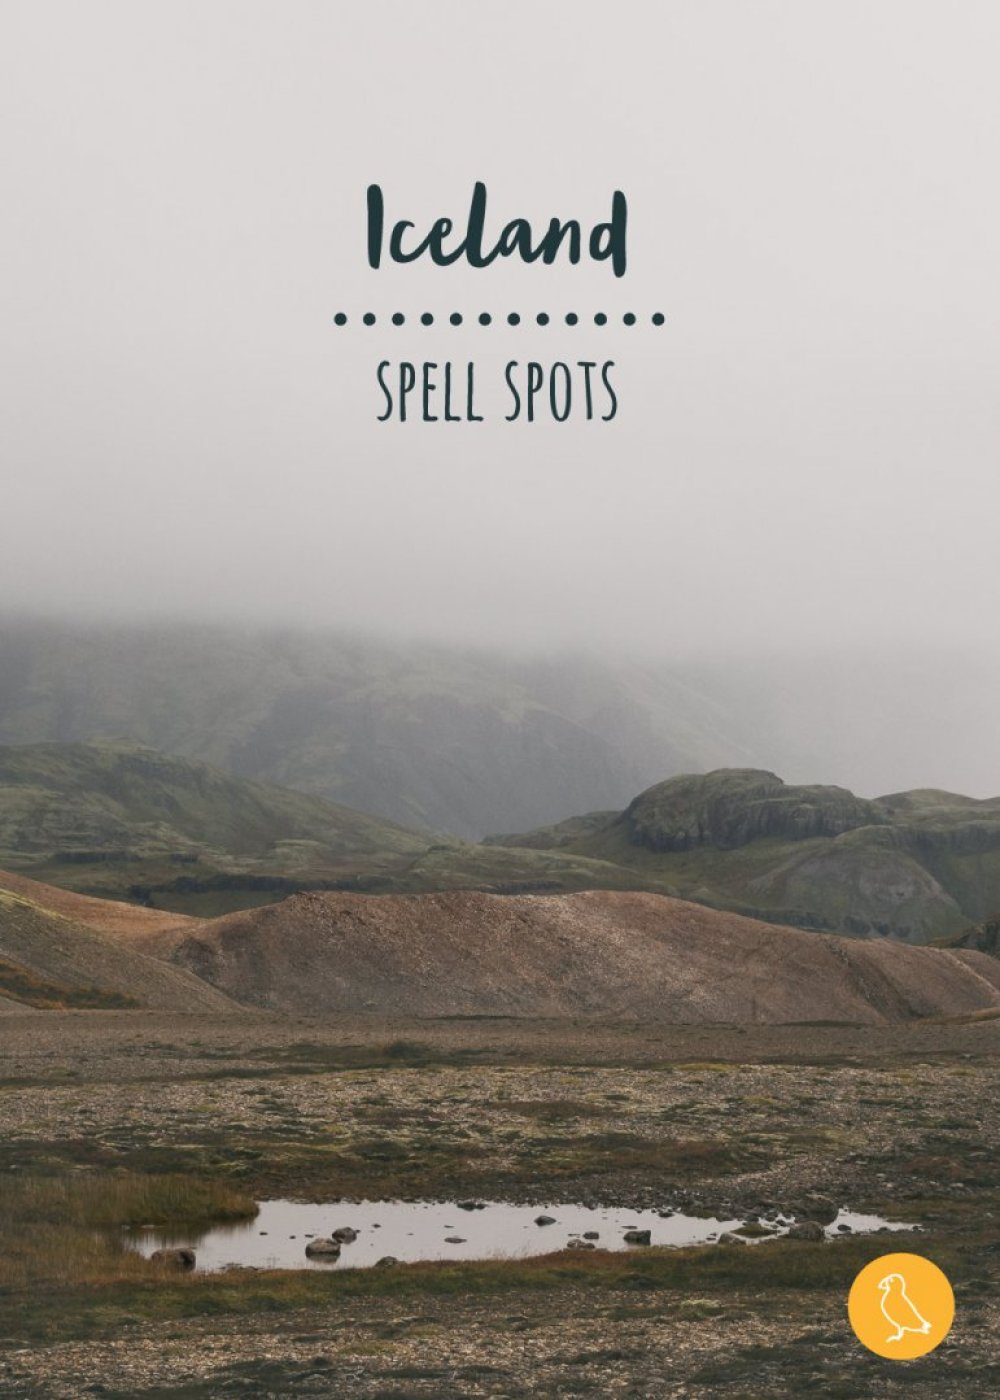 Icelanders have always known that their island is not only beautiful but also dangerous. Everything because of strange spirits that have not always wished people well. That means one thing – in this land you have to be constantly cautious...